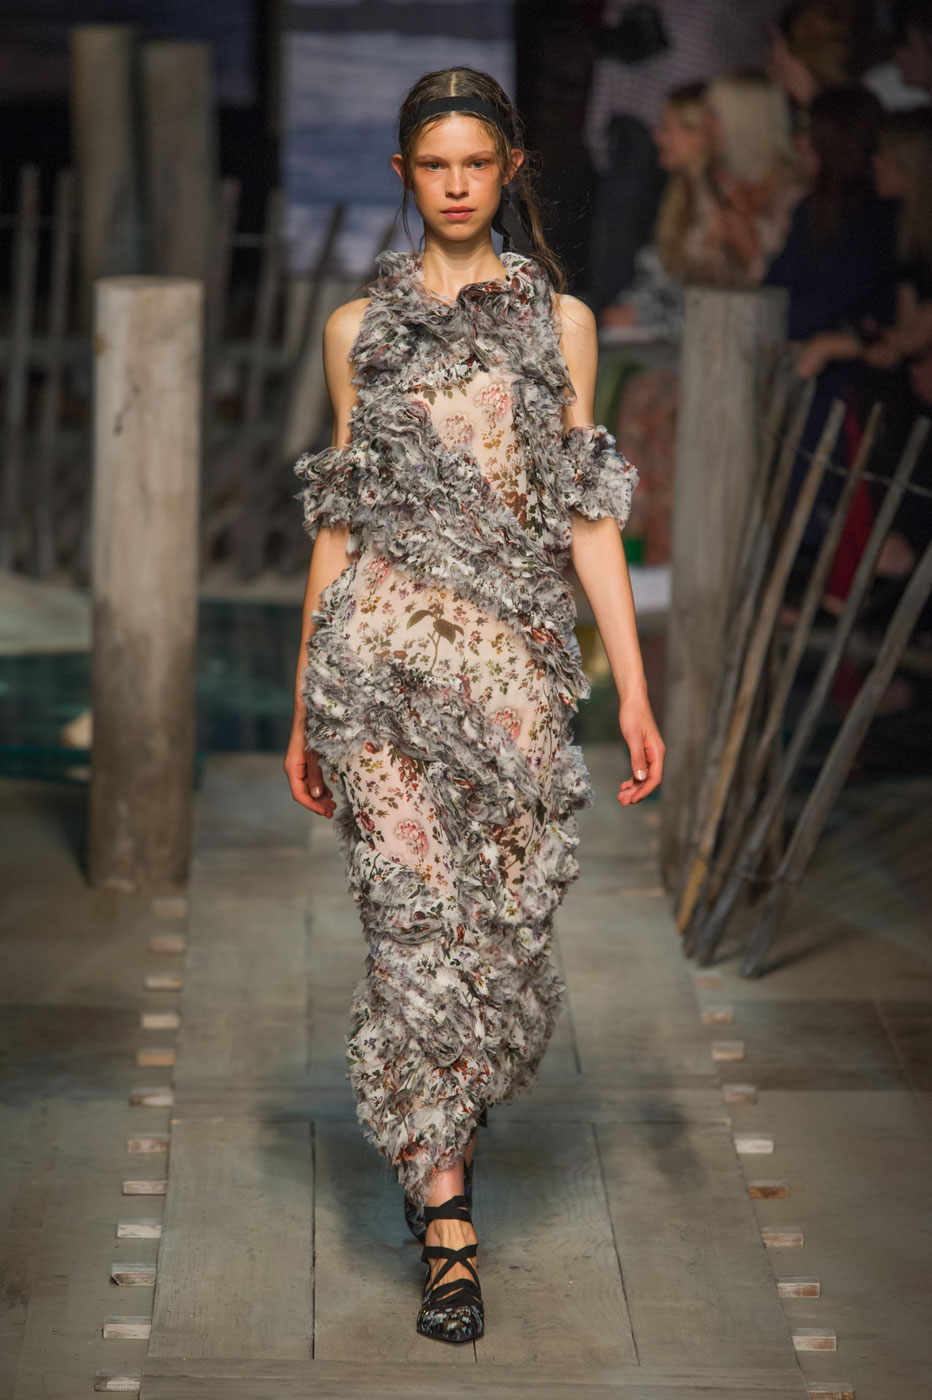 Erdem Spring/Summer 2017 Pays Tribute to a Shipwrecked Spy